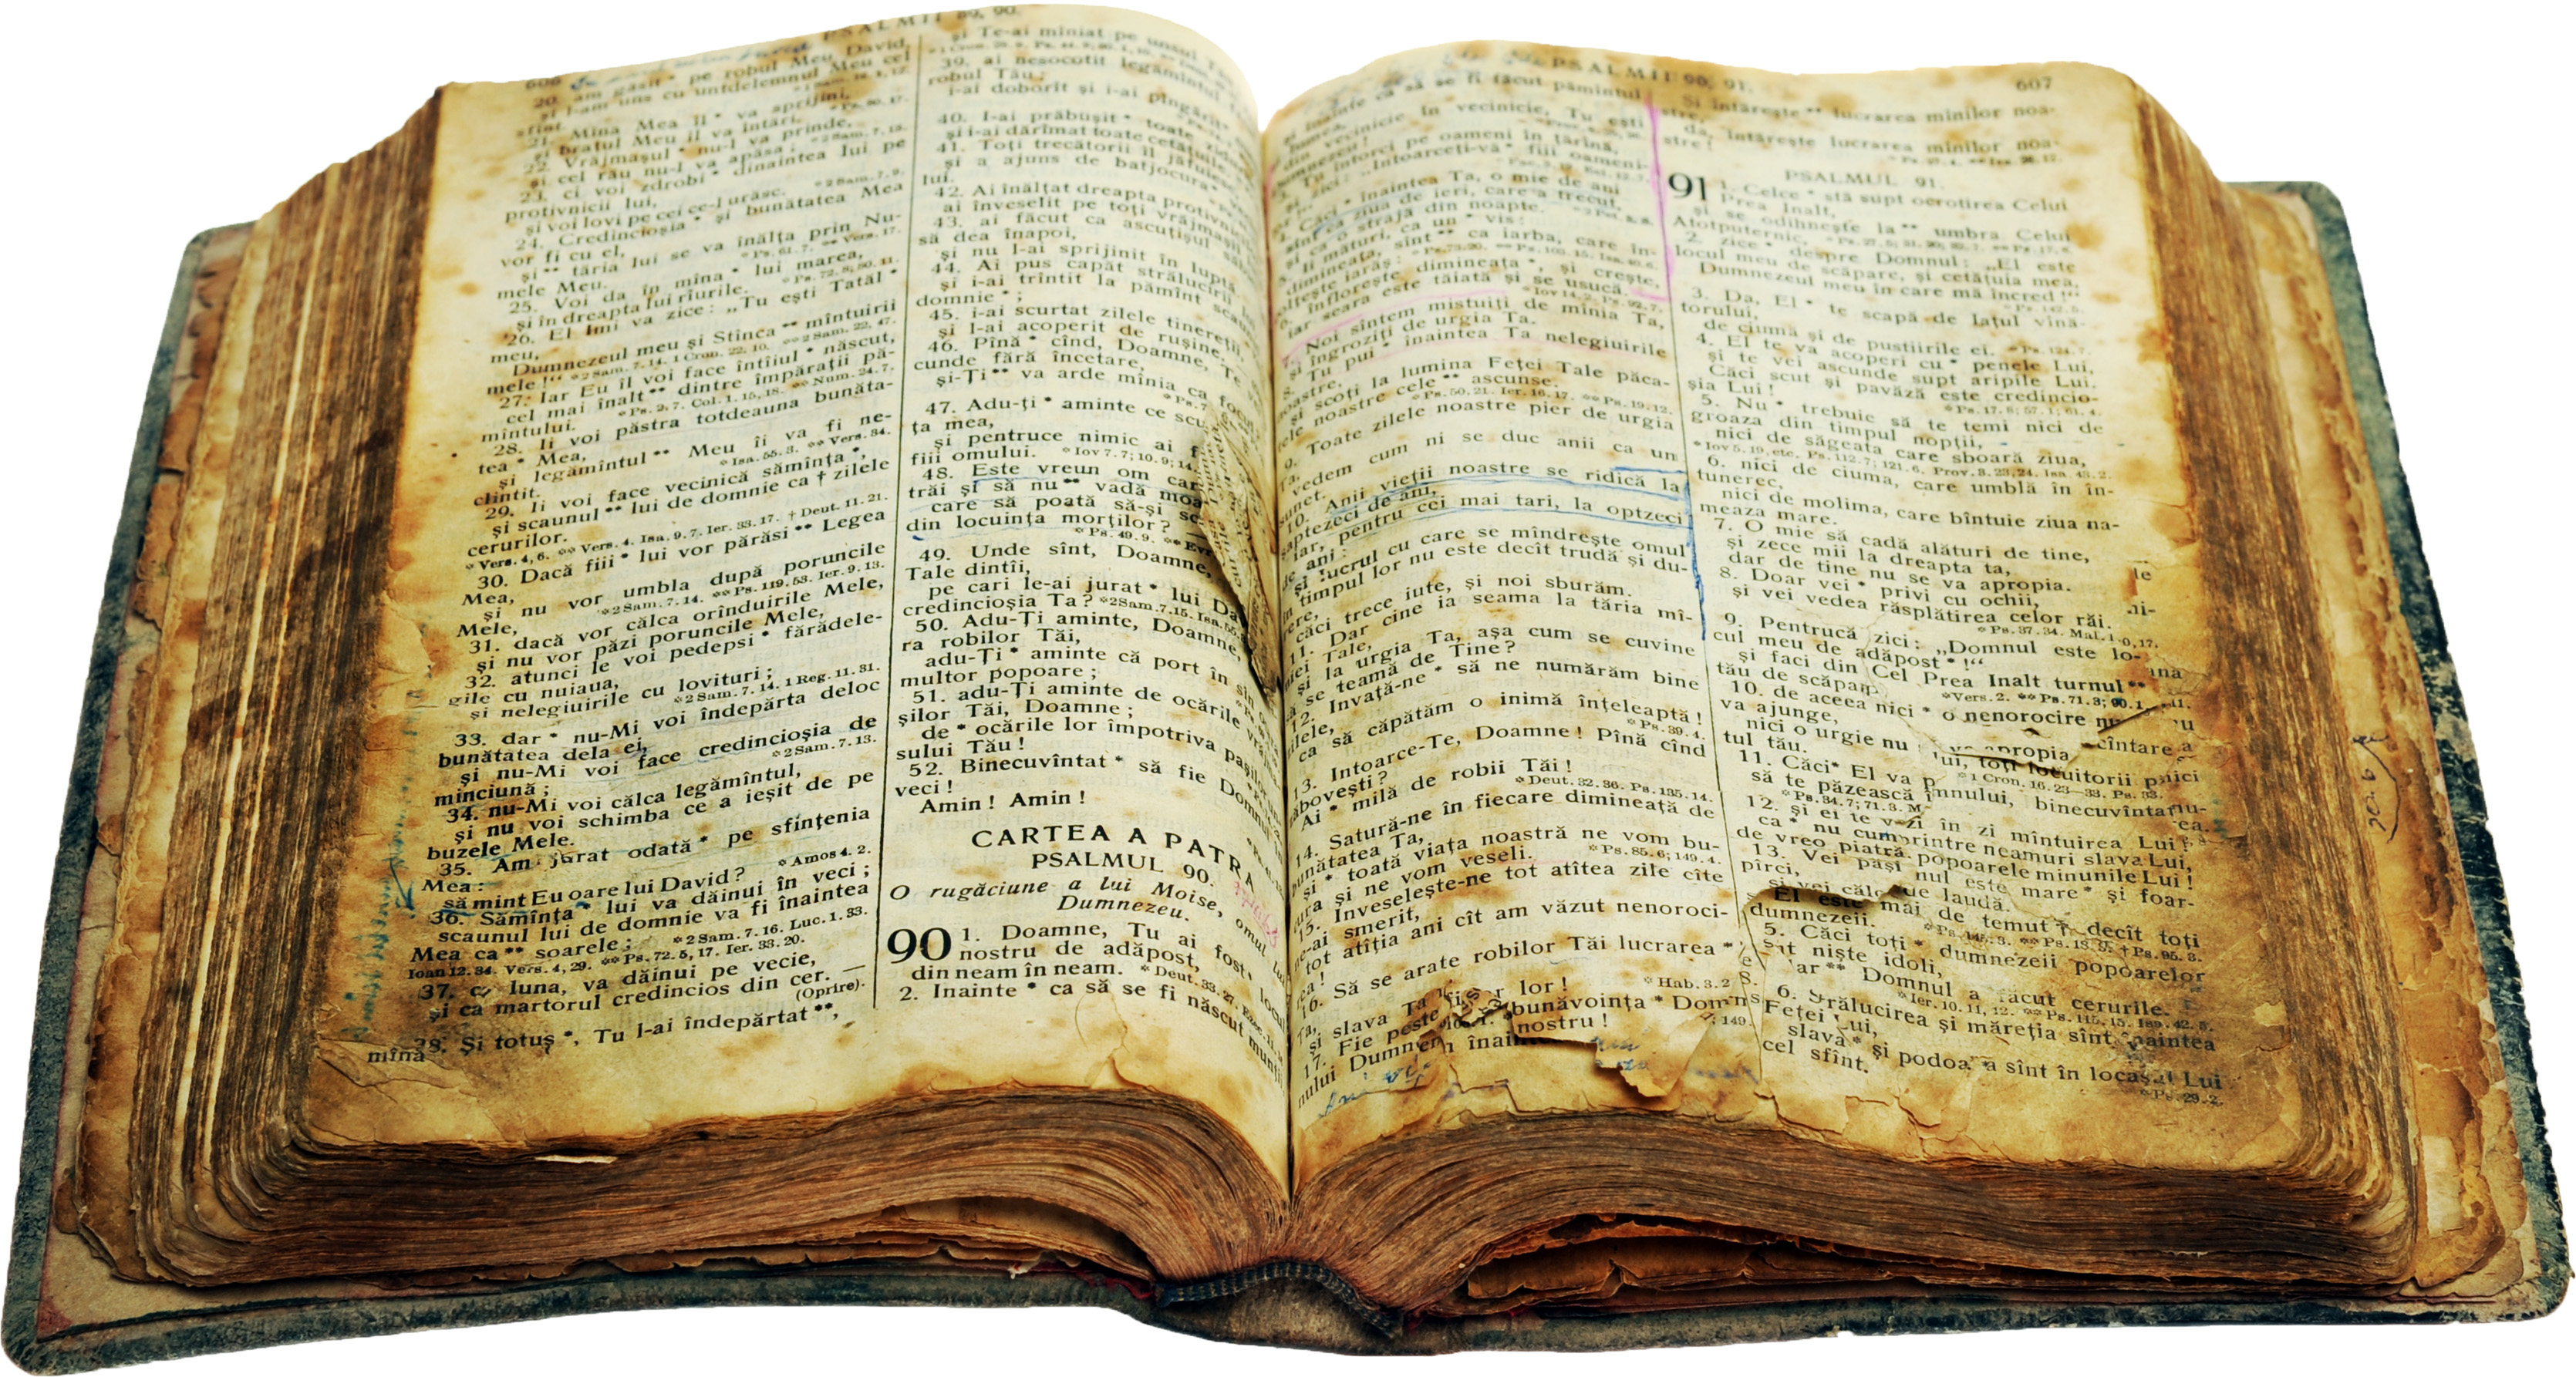 Old Bible Image Dreamstime b